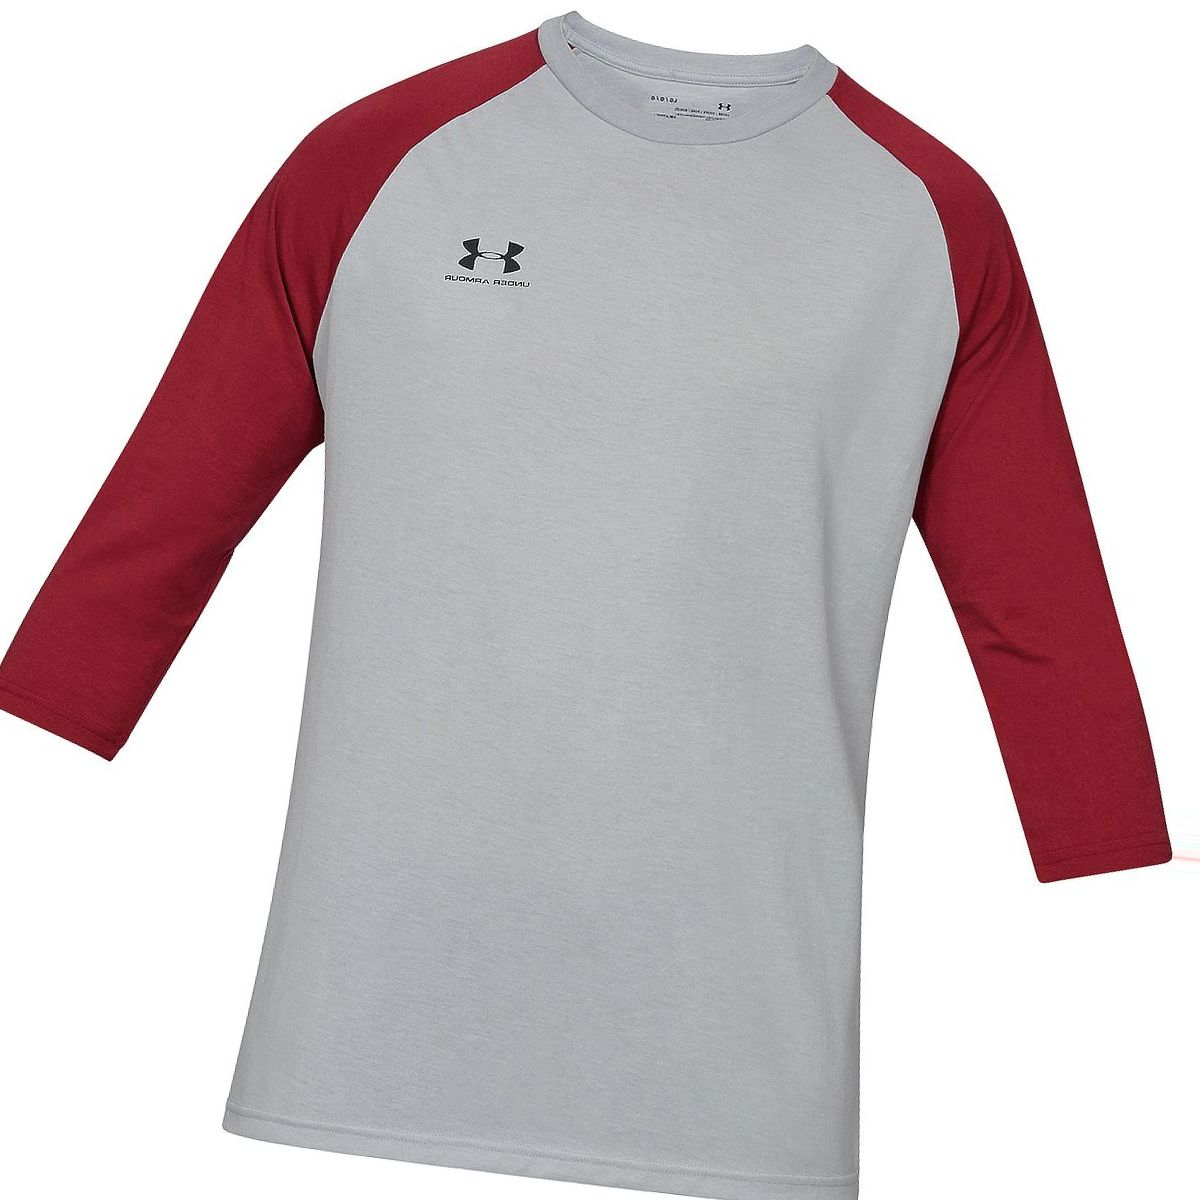 Under Armour Sportstyle Left Chest 3/4 T-Shirt - Men's